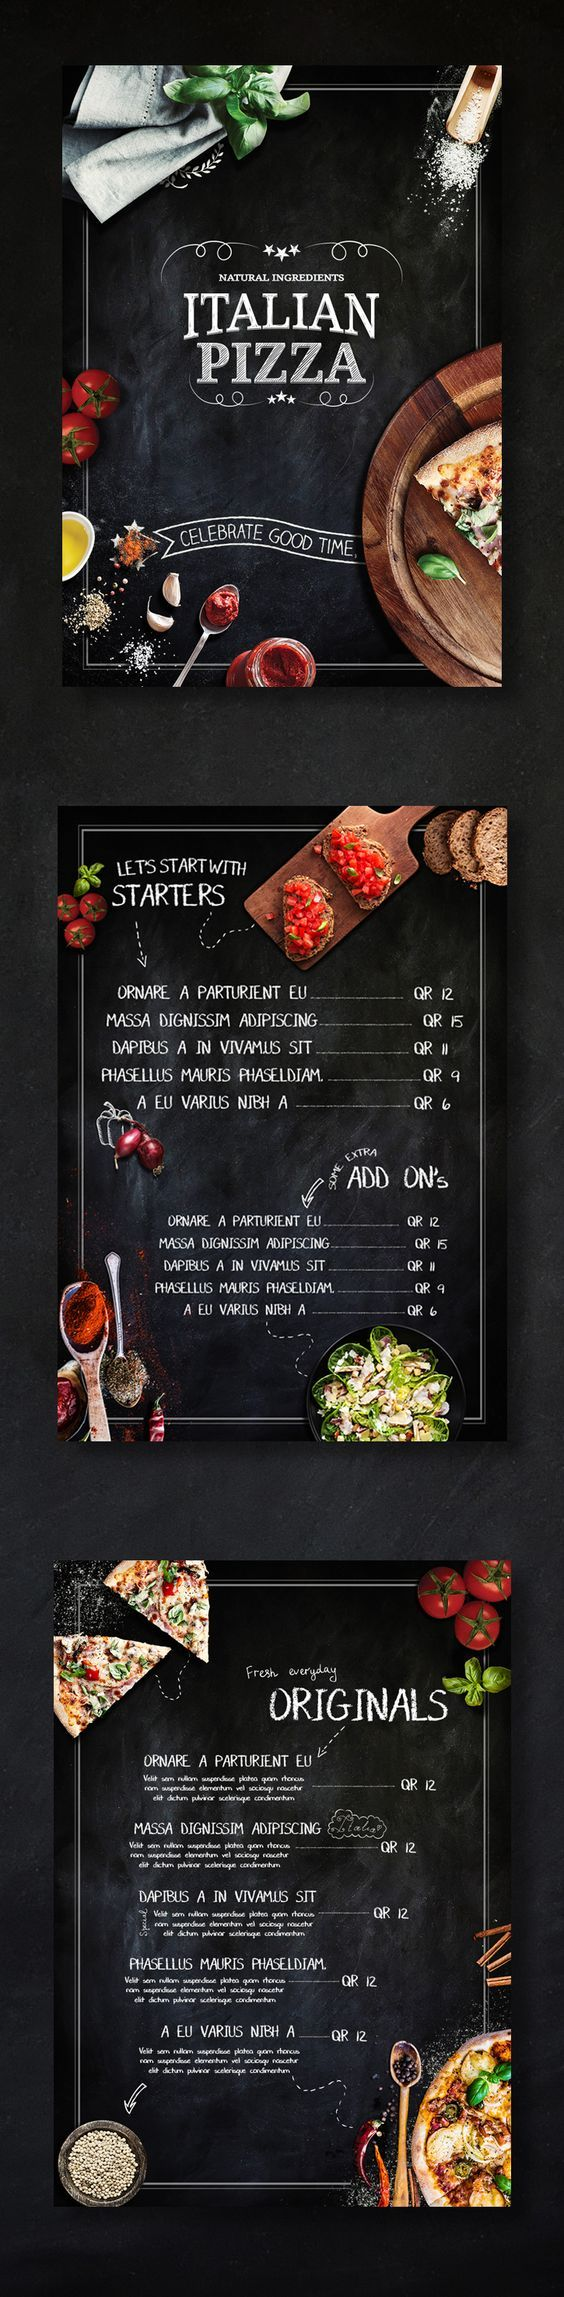 Pizza place menu on Behance: